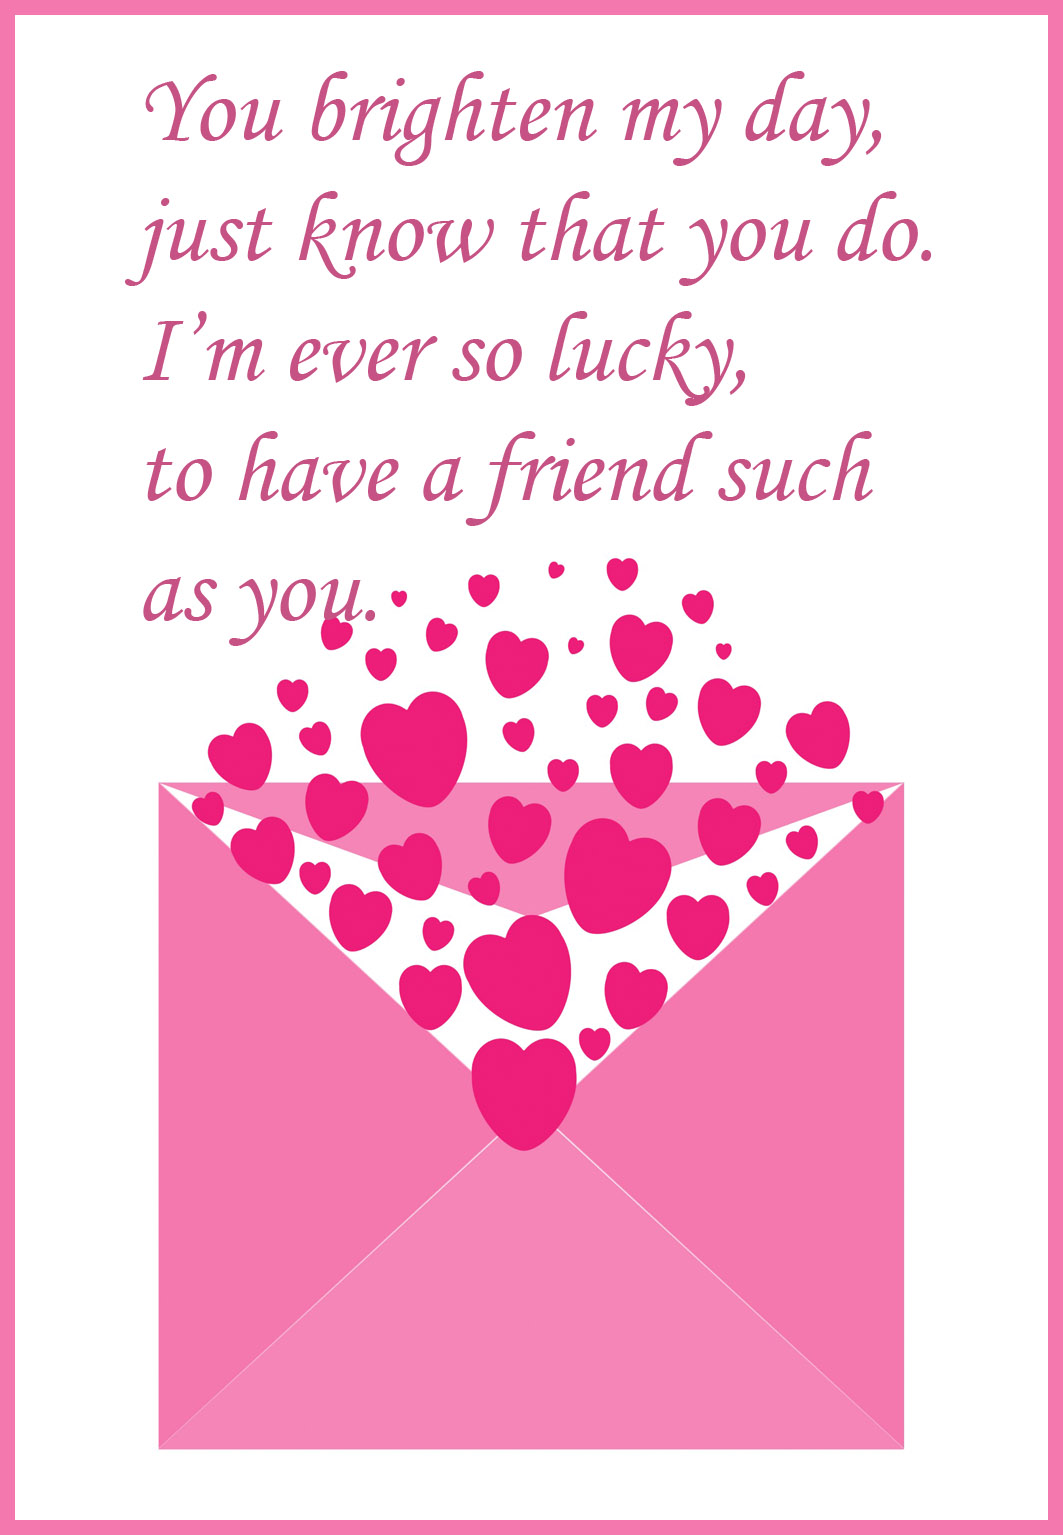 friendshipvalentinesdaycards – Free Printable Valentine Cards for Husband